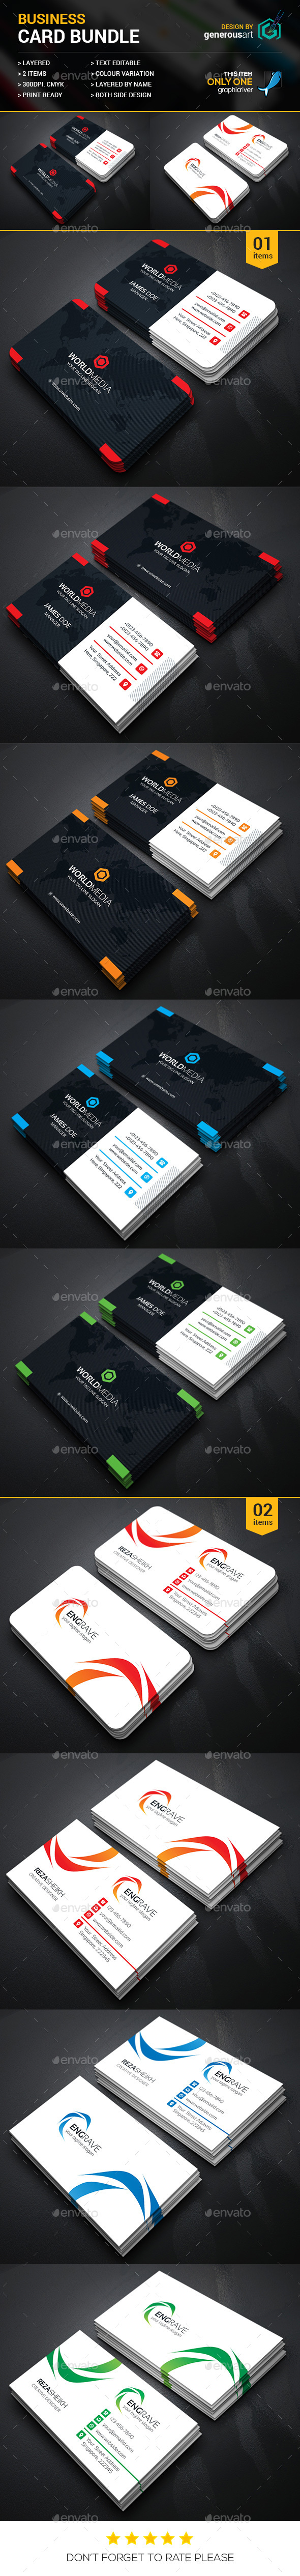 Business Card Bundle 2 in 1 vol.26